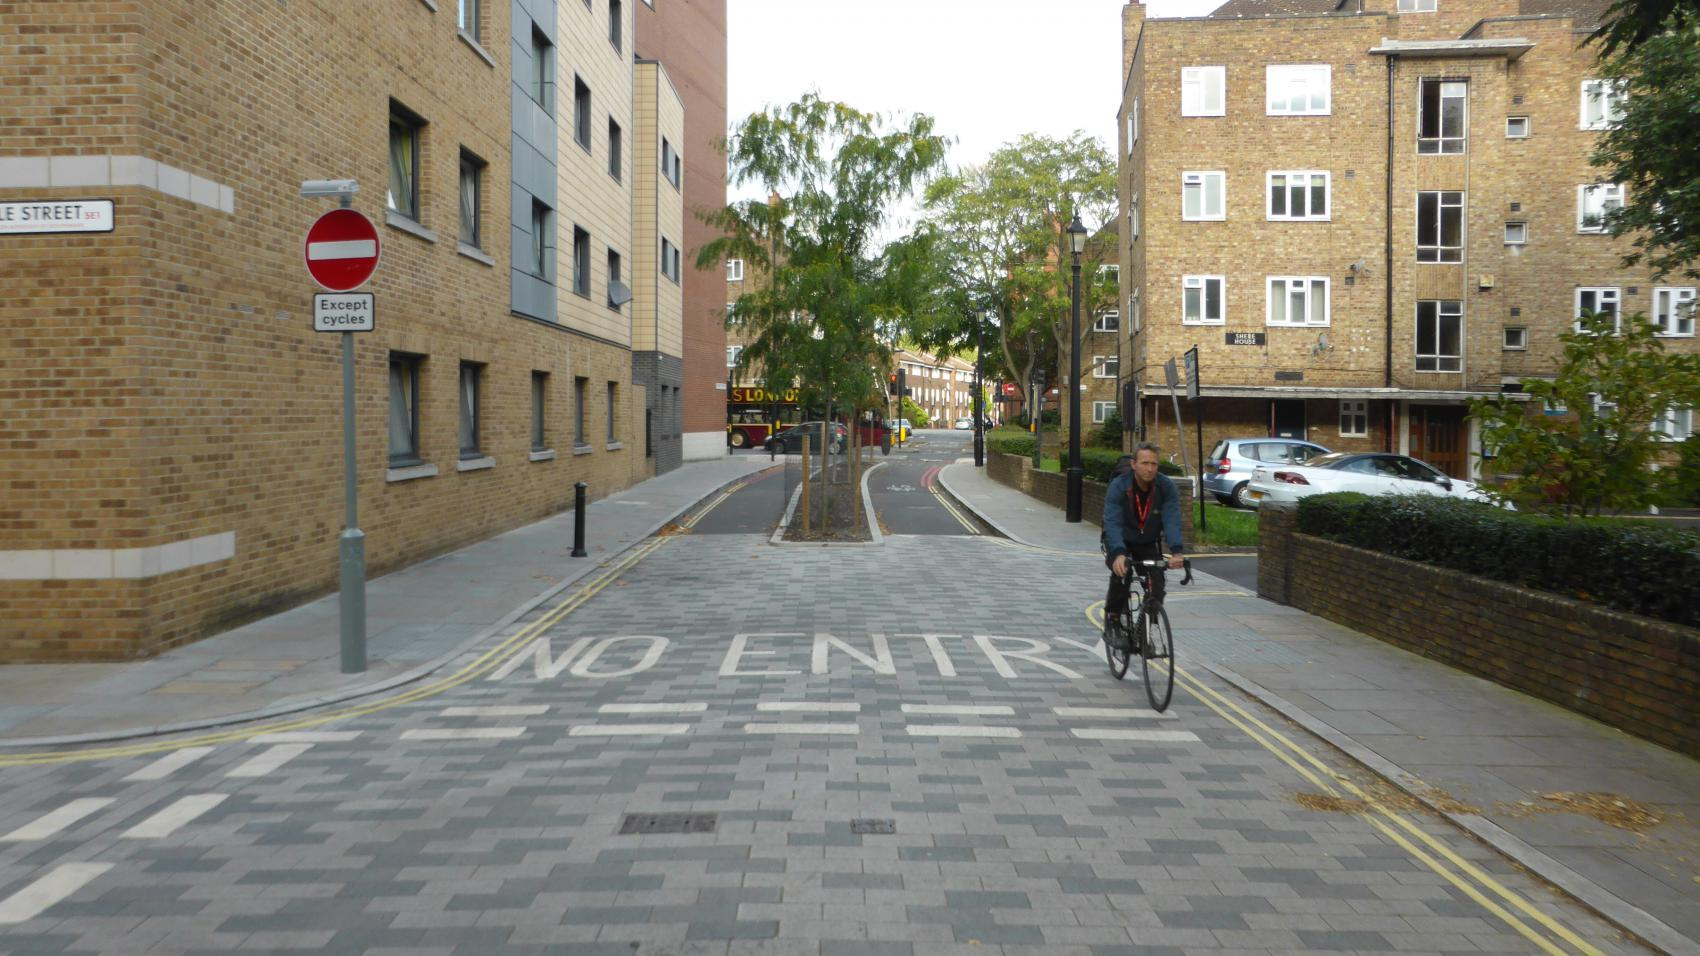 Quietway 1: a section of Globe Street between Cole St. and Greater Dover St. is closed for cars, but open for bikes.